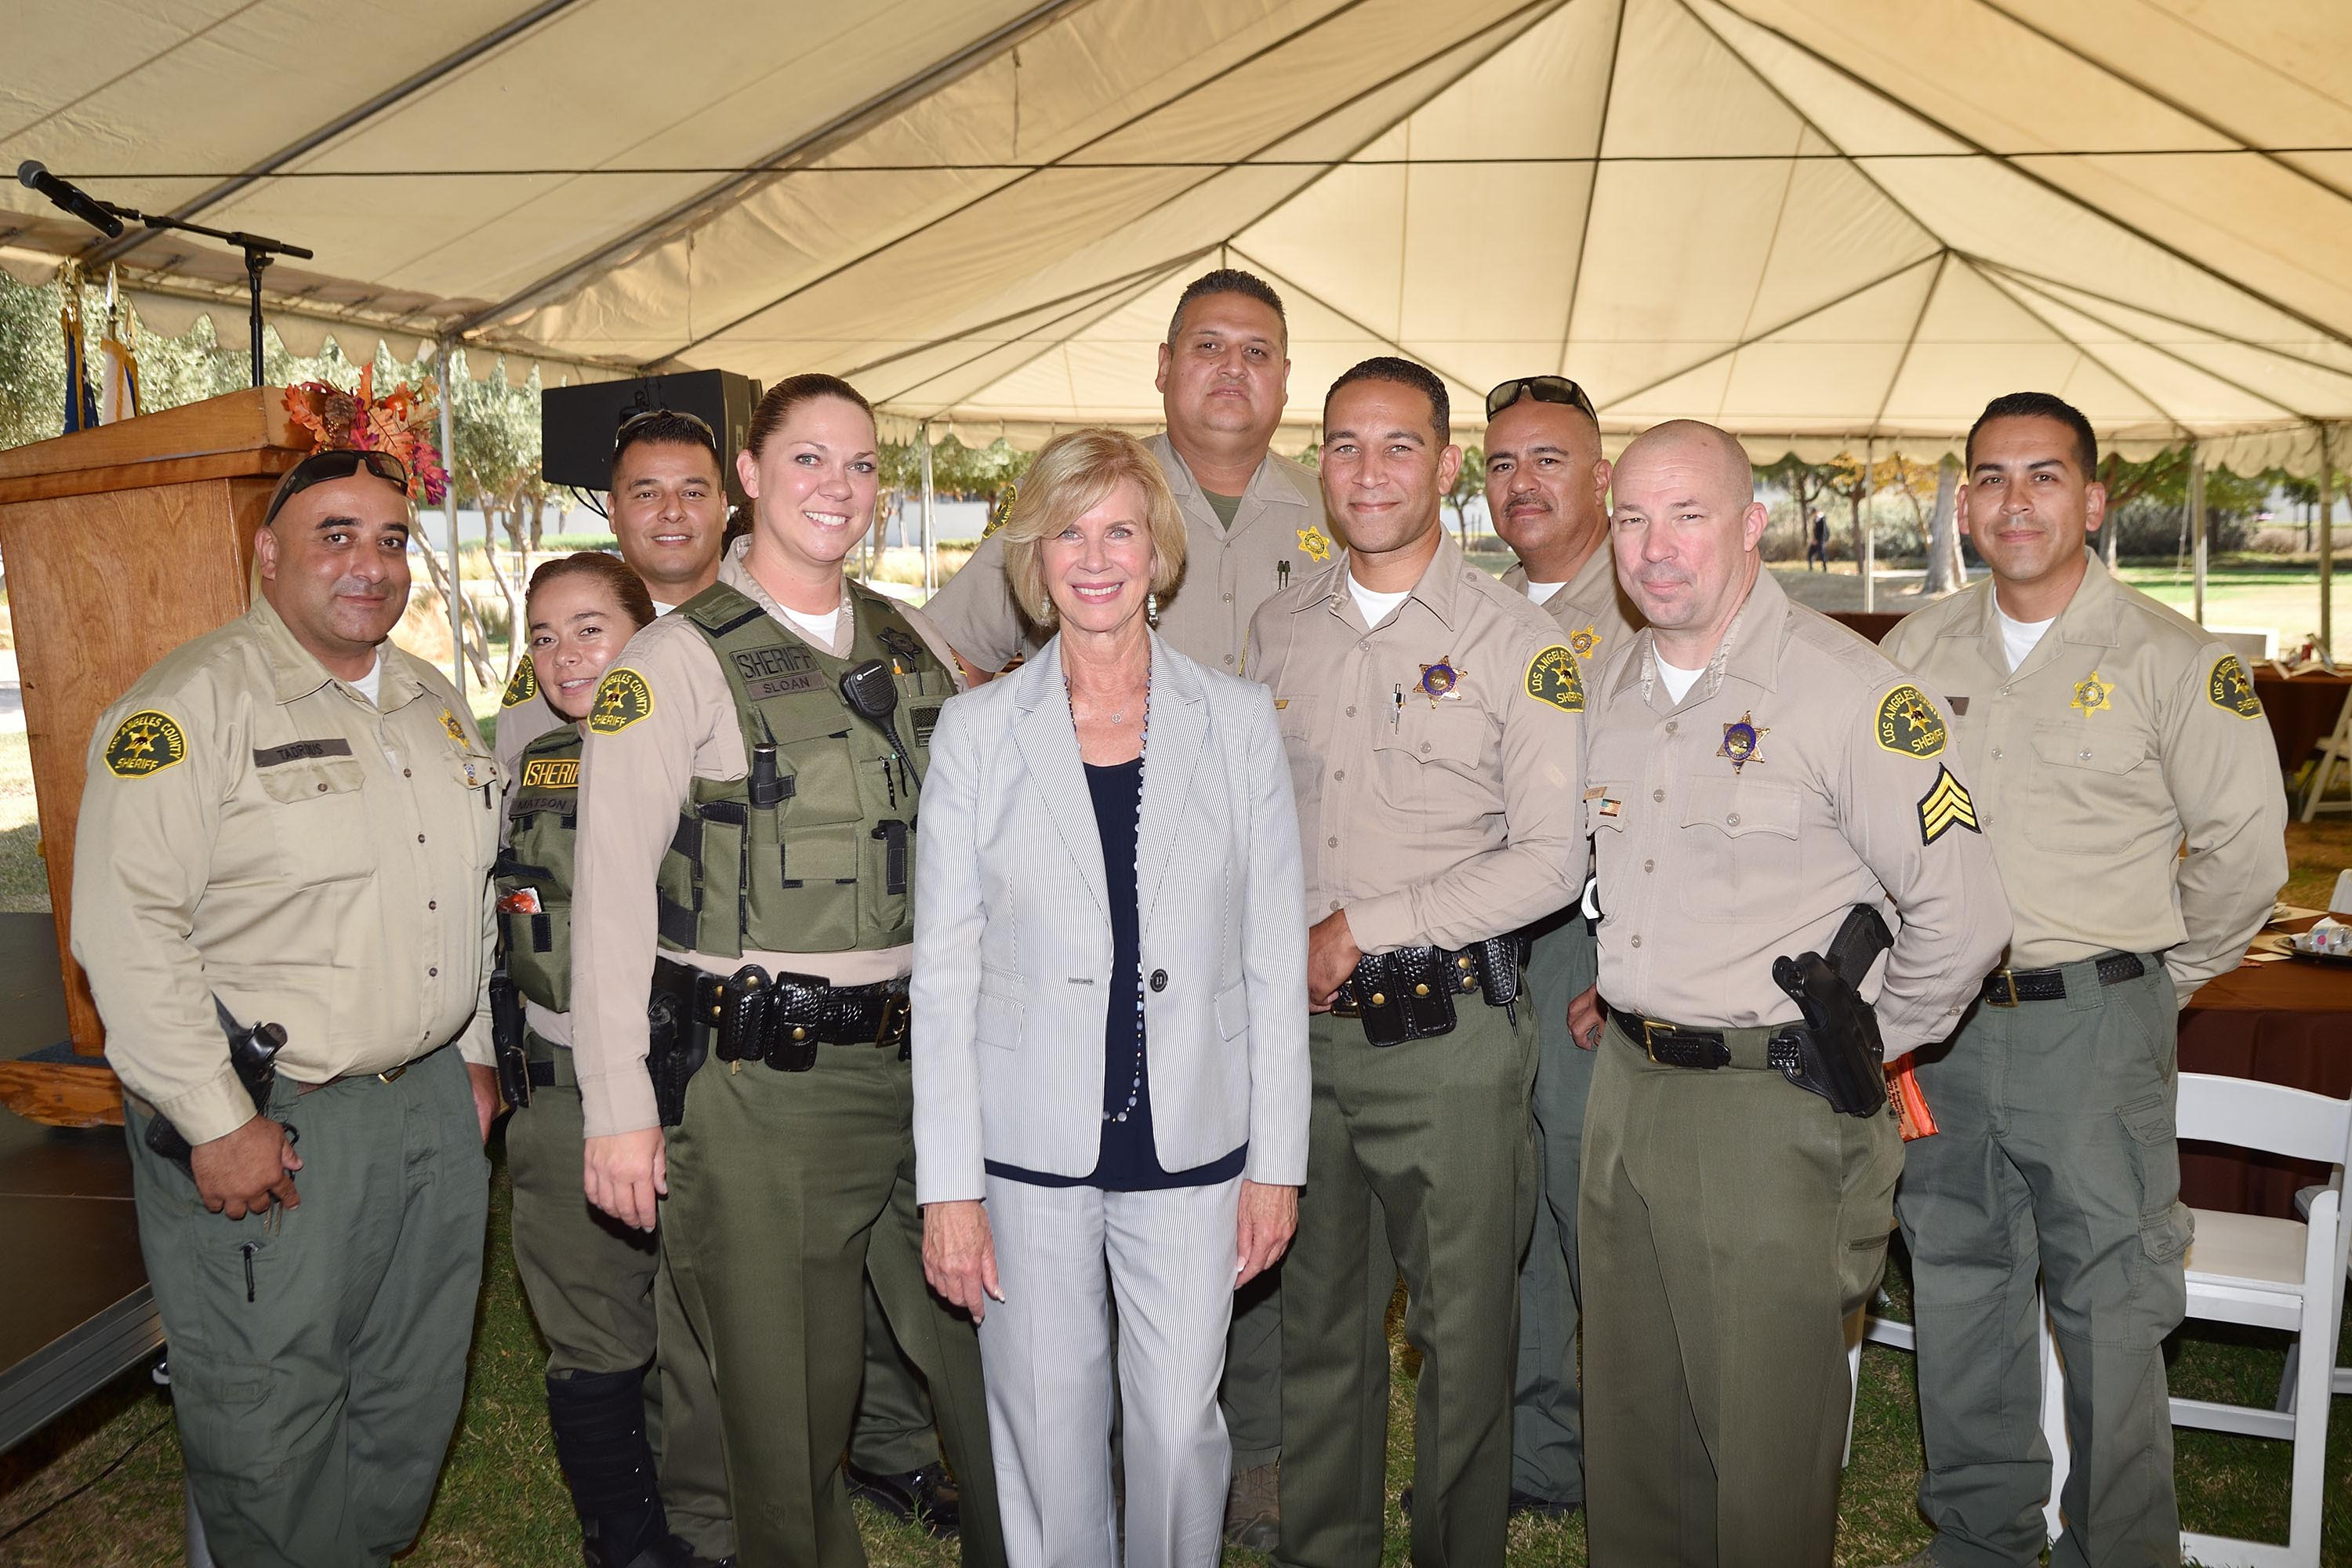 District 4 – Supervisor Janice Hahn<br> <b>Oct. 17, 2019 – Public Safety Officer Appreciation BBQ. </b><br> <i>Photo by Steven Georges / For the Board of Supervisors</i>